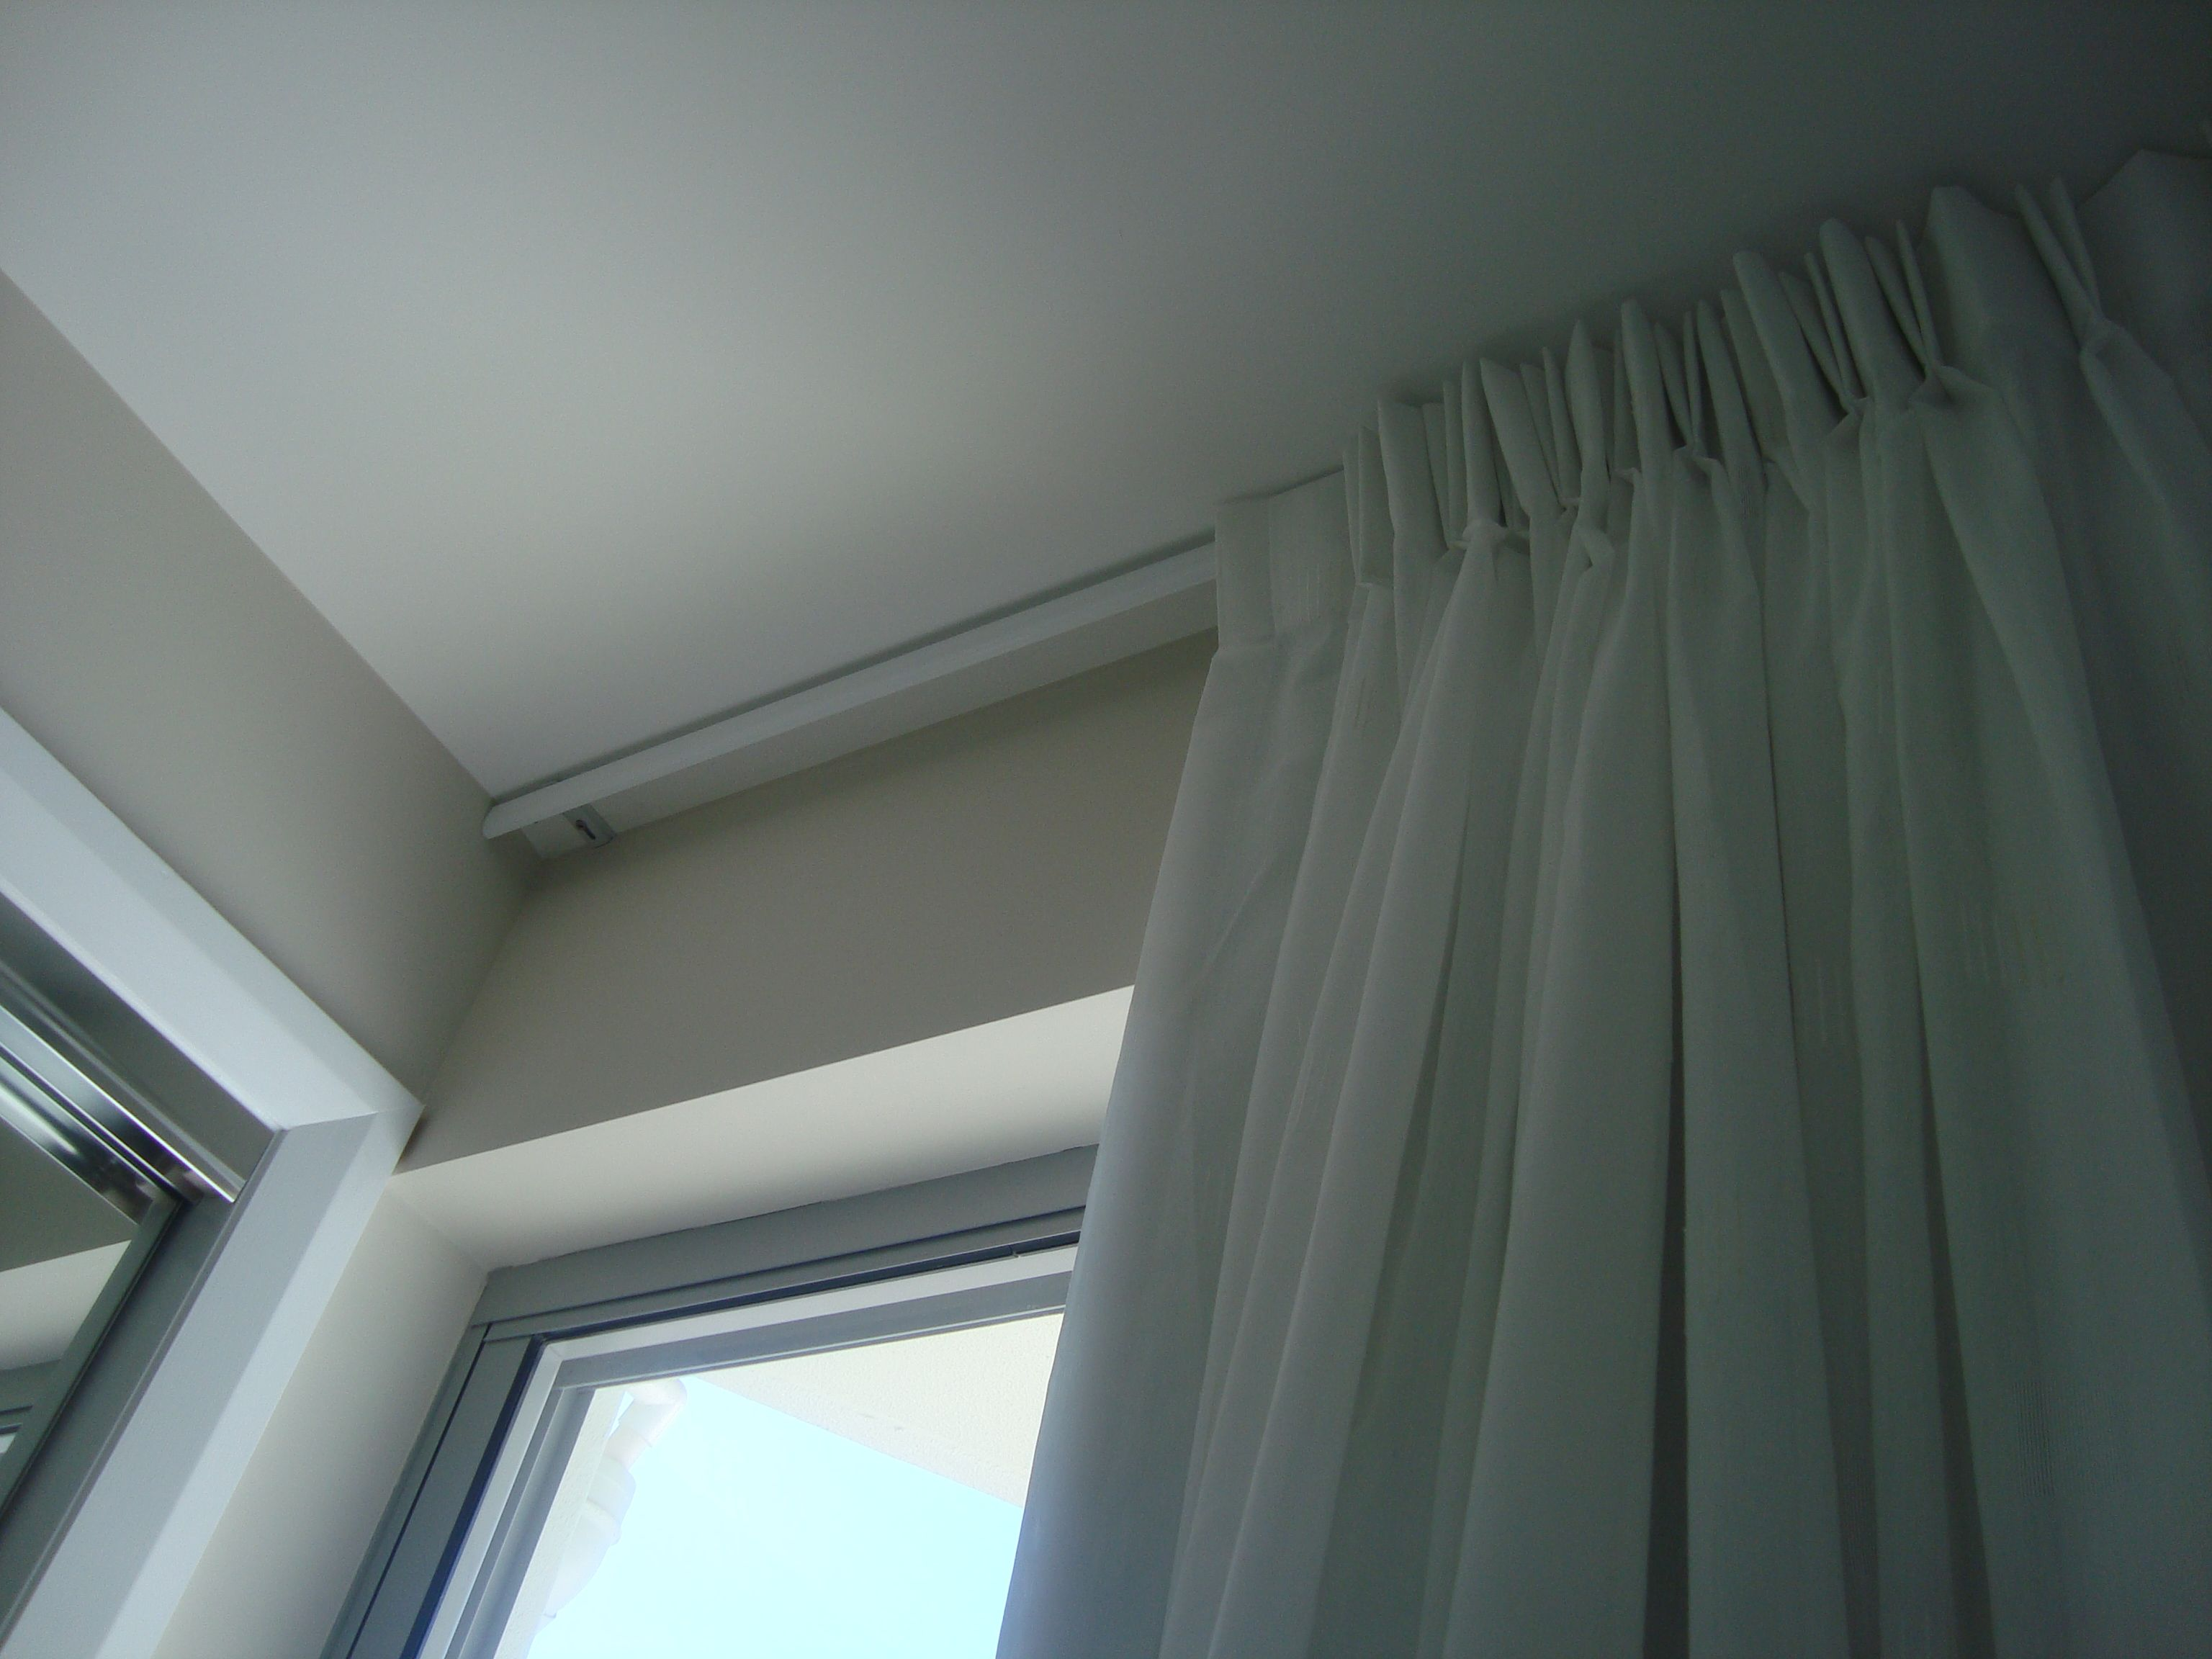 20 top ceiling tracks for curtains